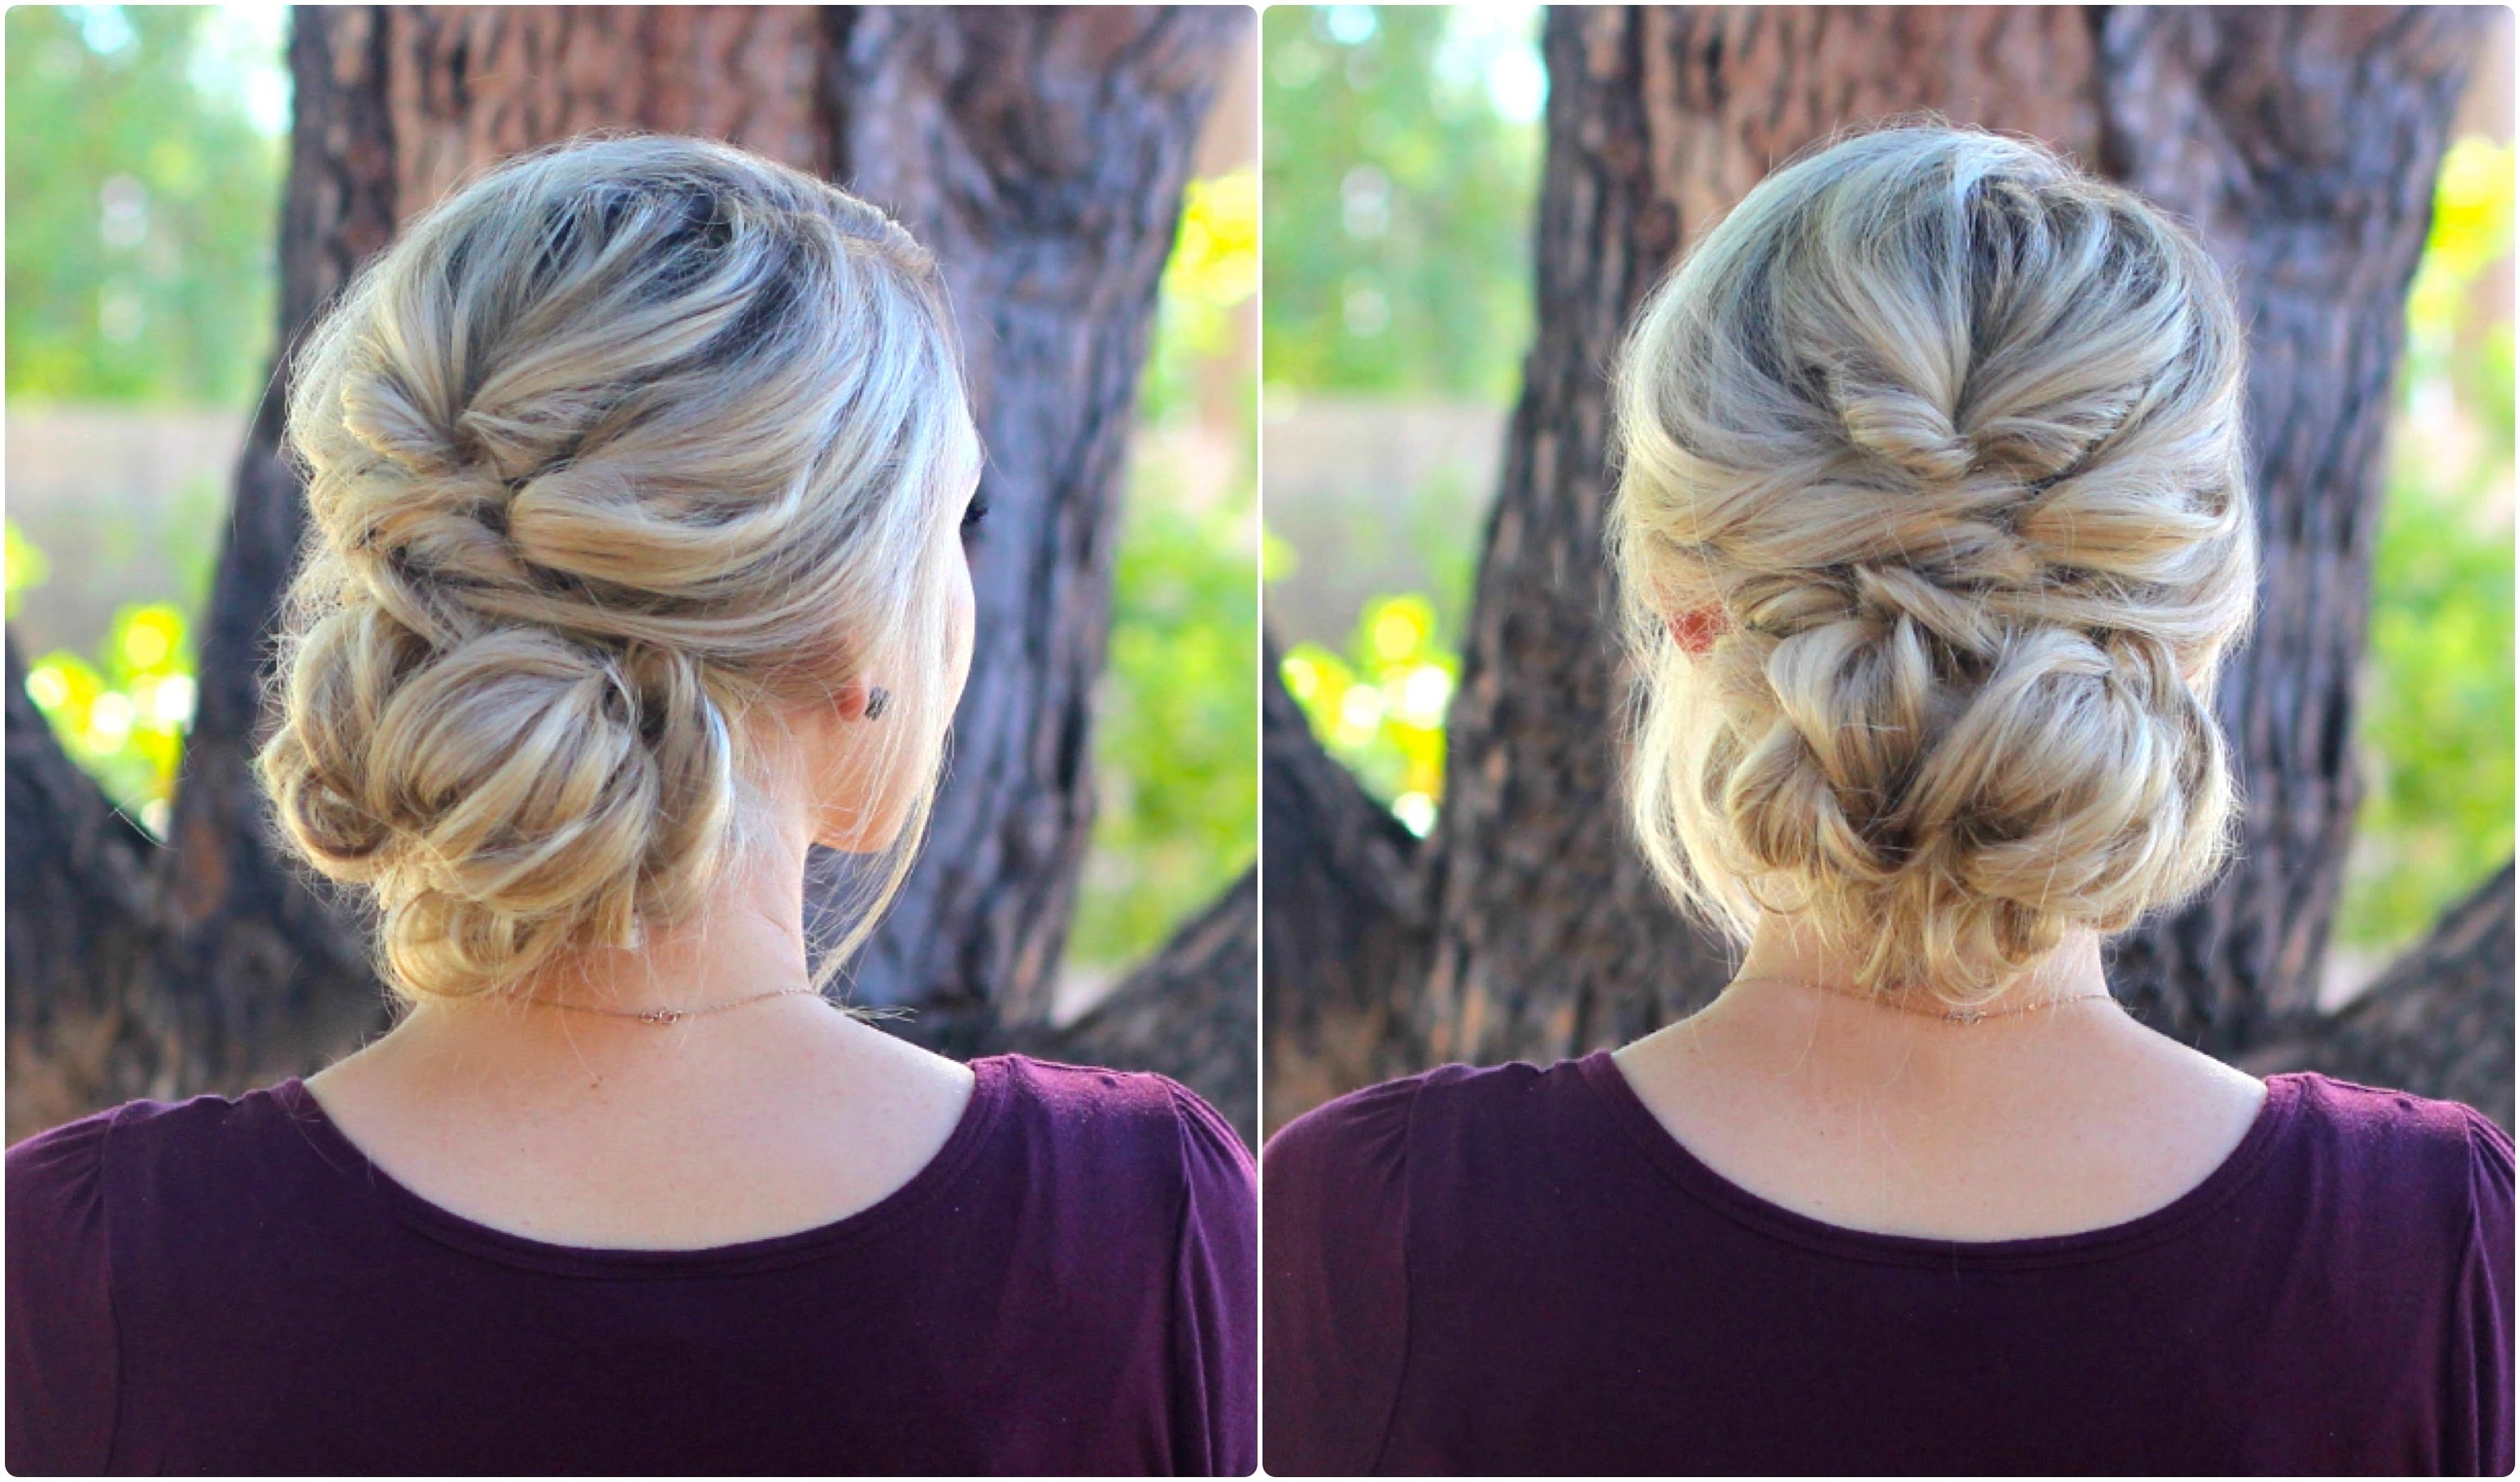 Topsy Tail Bun | Updo | Cute Girls Hairstyles – Youtube Pertaining To Cute Bun Updo Hairstyles (View 15 of 15)